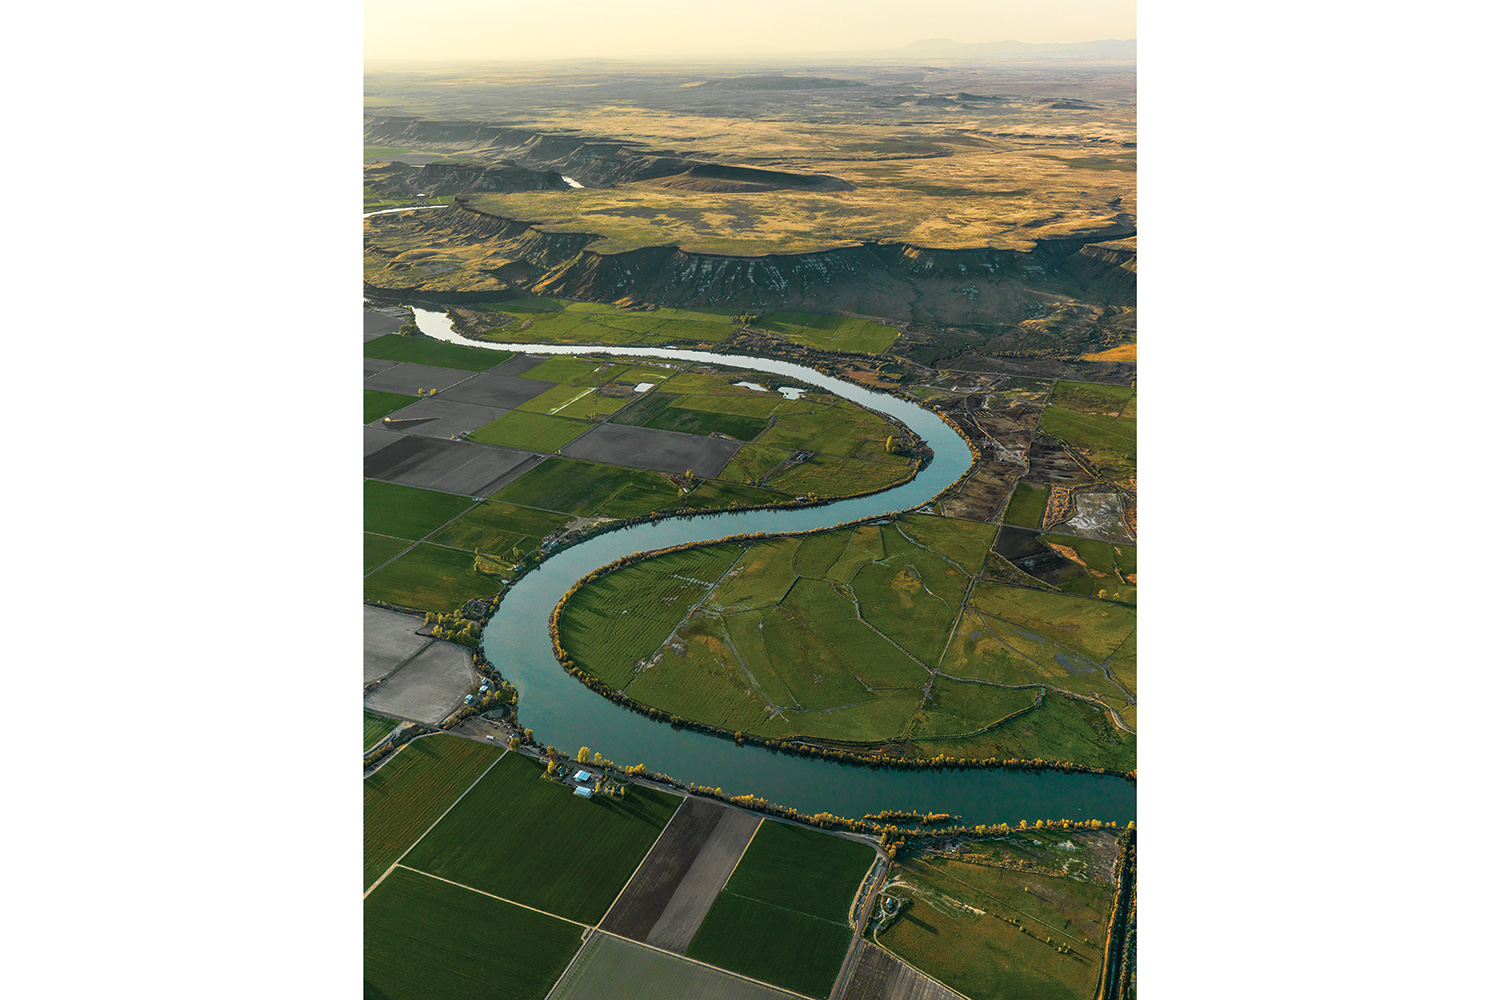 Drawn river agriculture Sewer through system (Idaho's